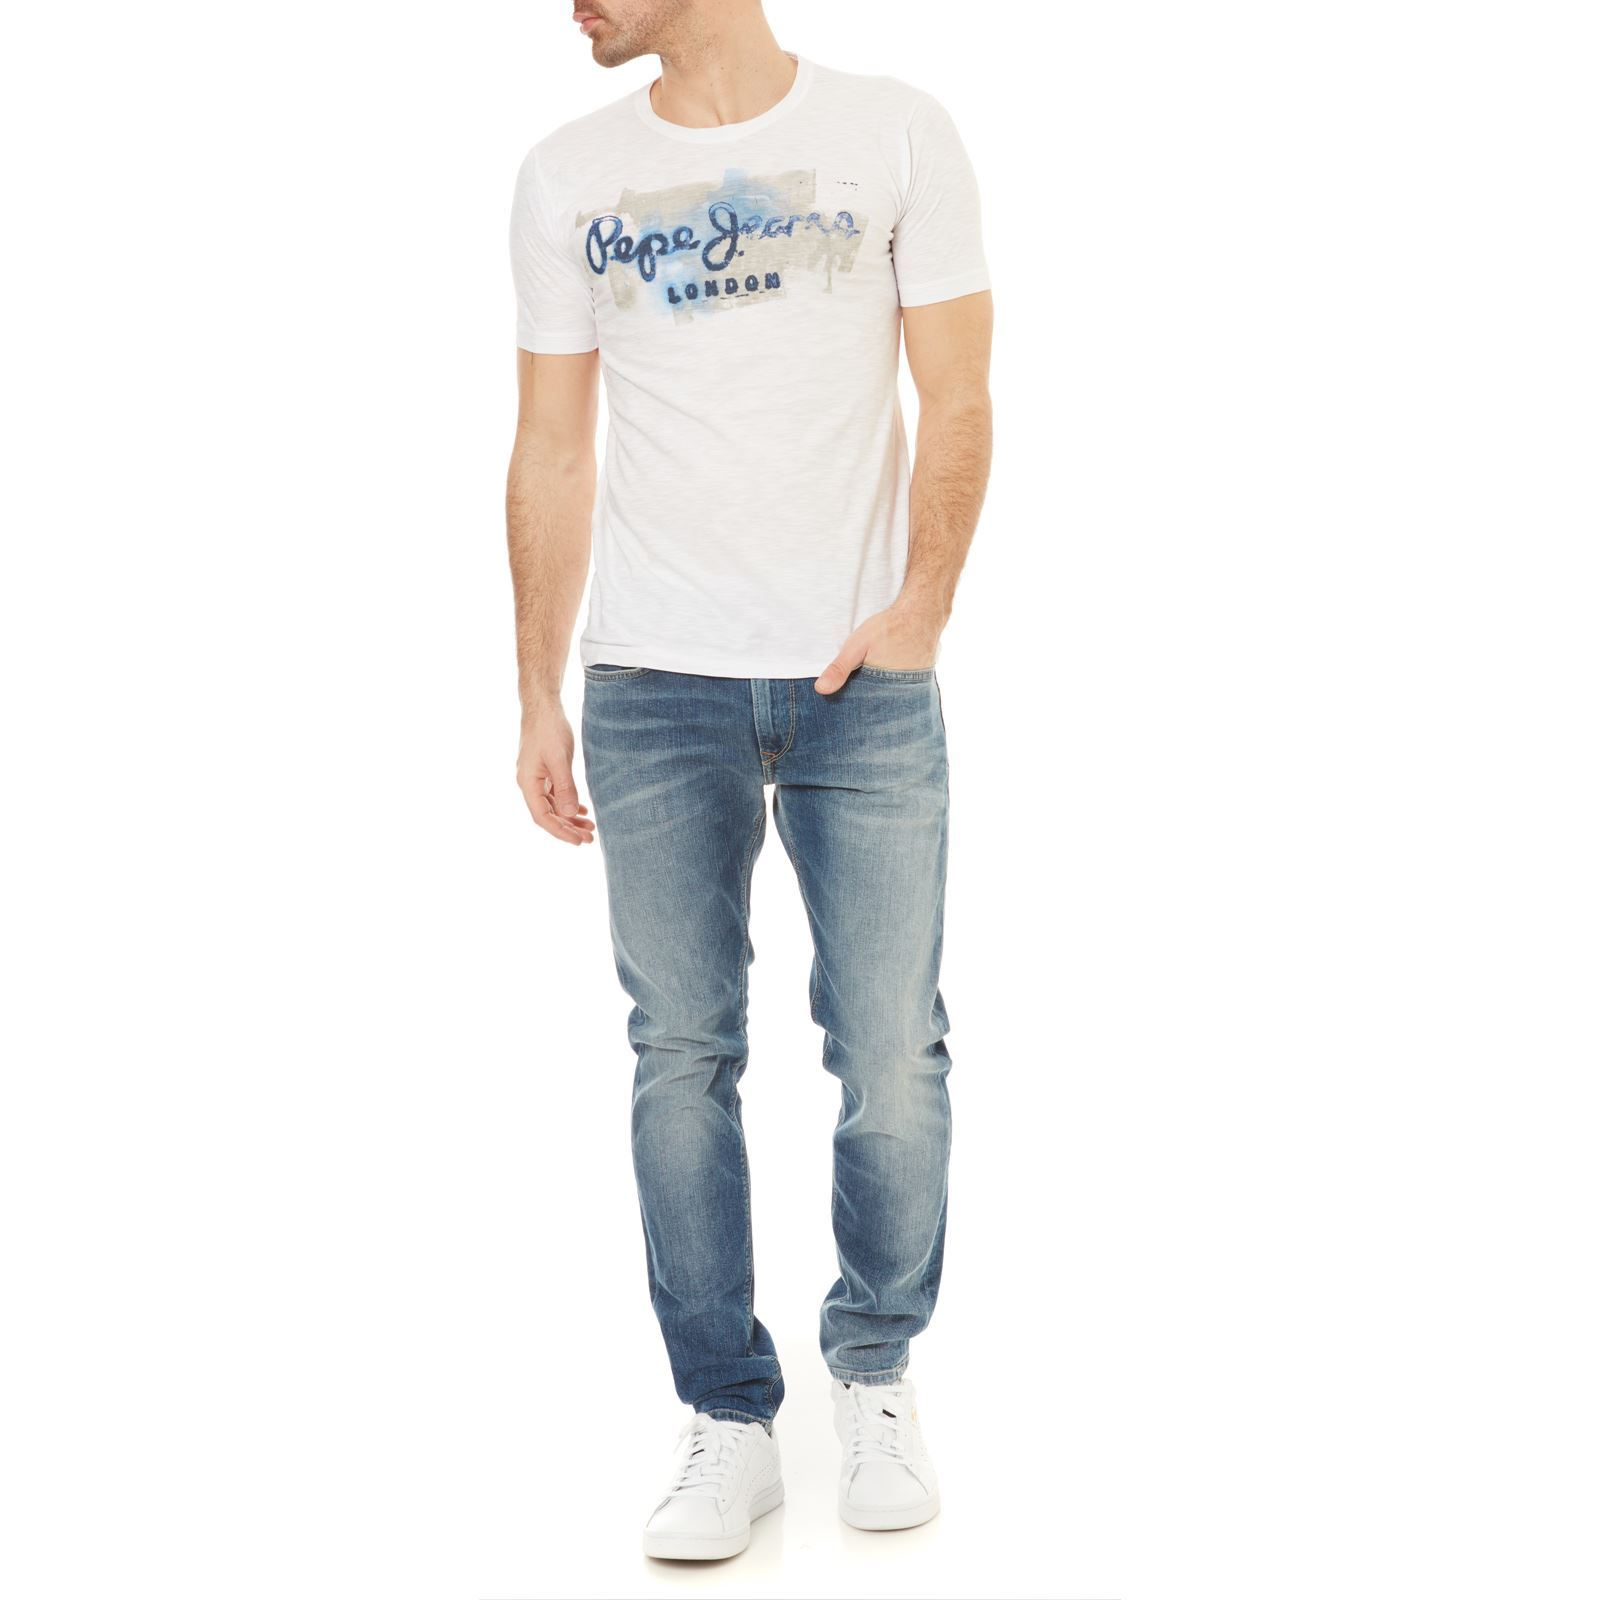 shirt London Courtes Manches Golders Blanc T Jeans Pepe IOqRTO8